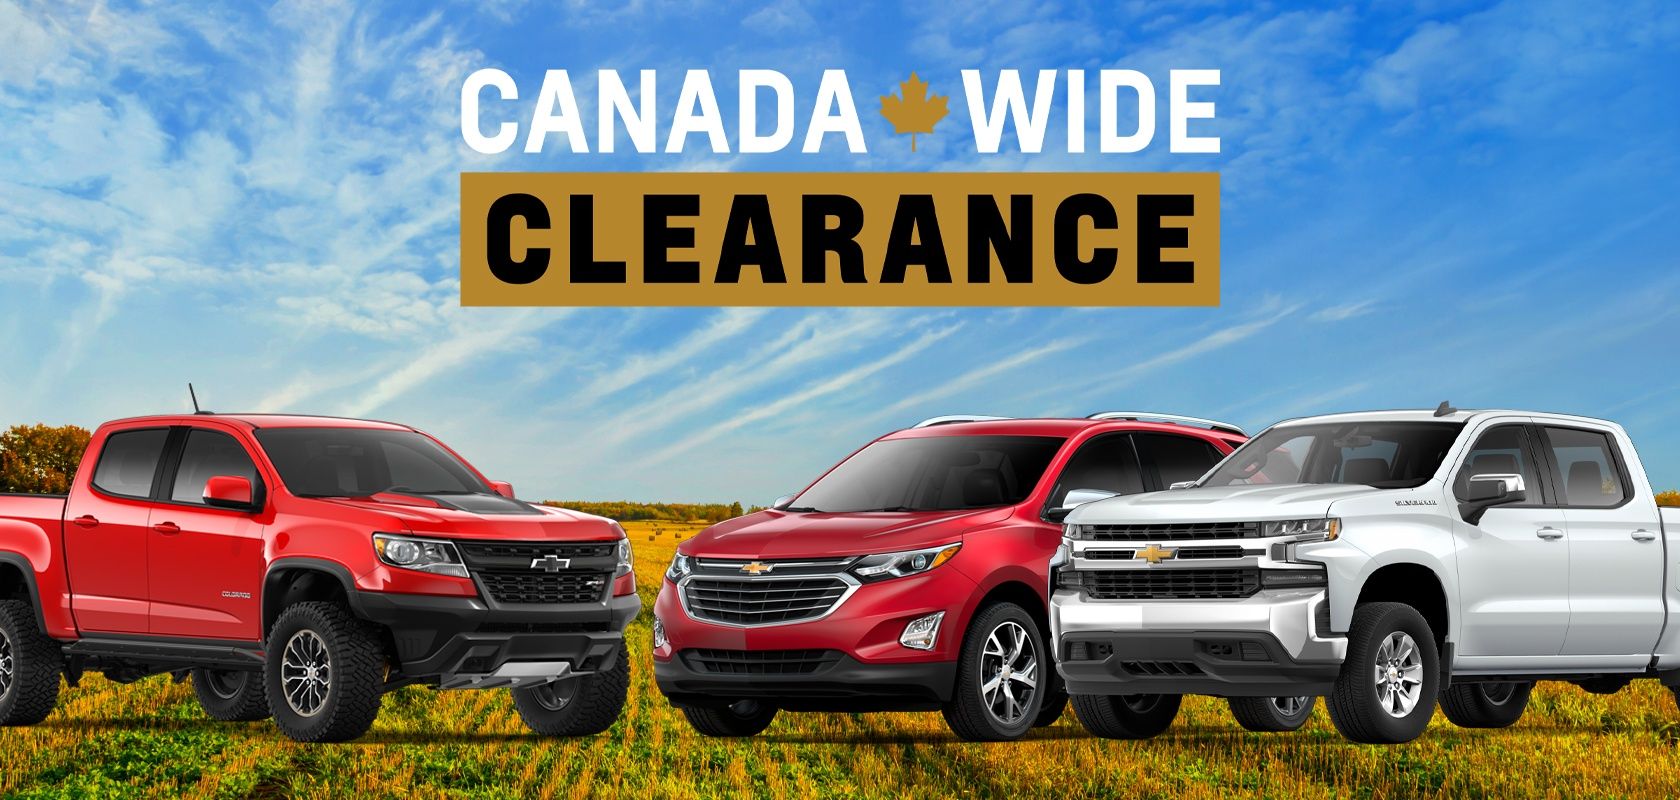 Canada Wide Clearance on Chevrolet